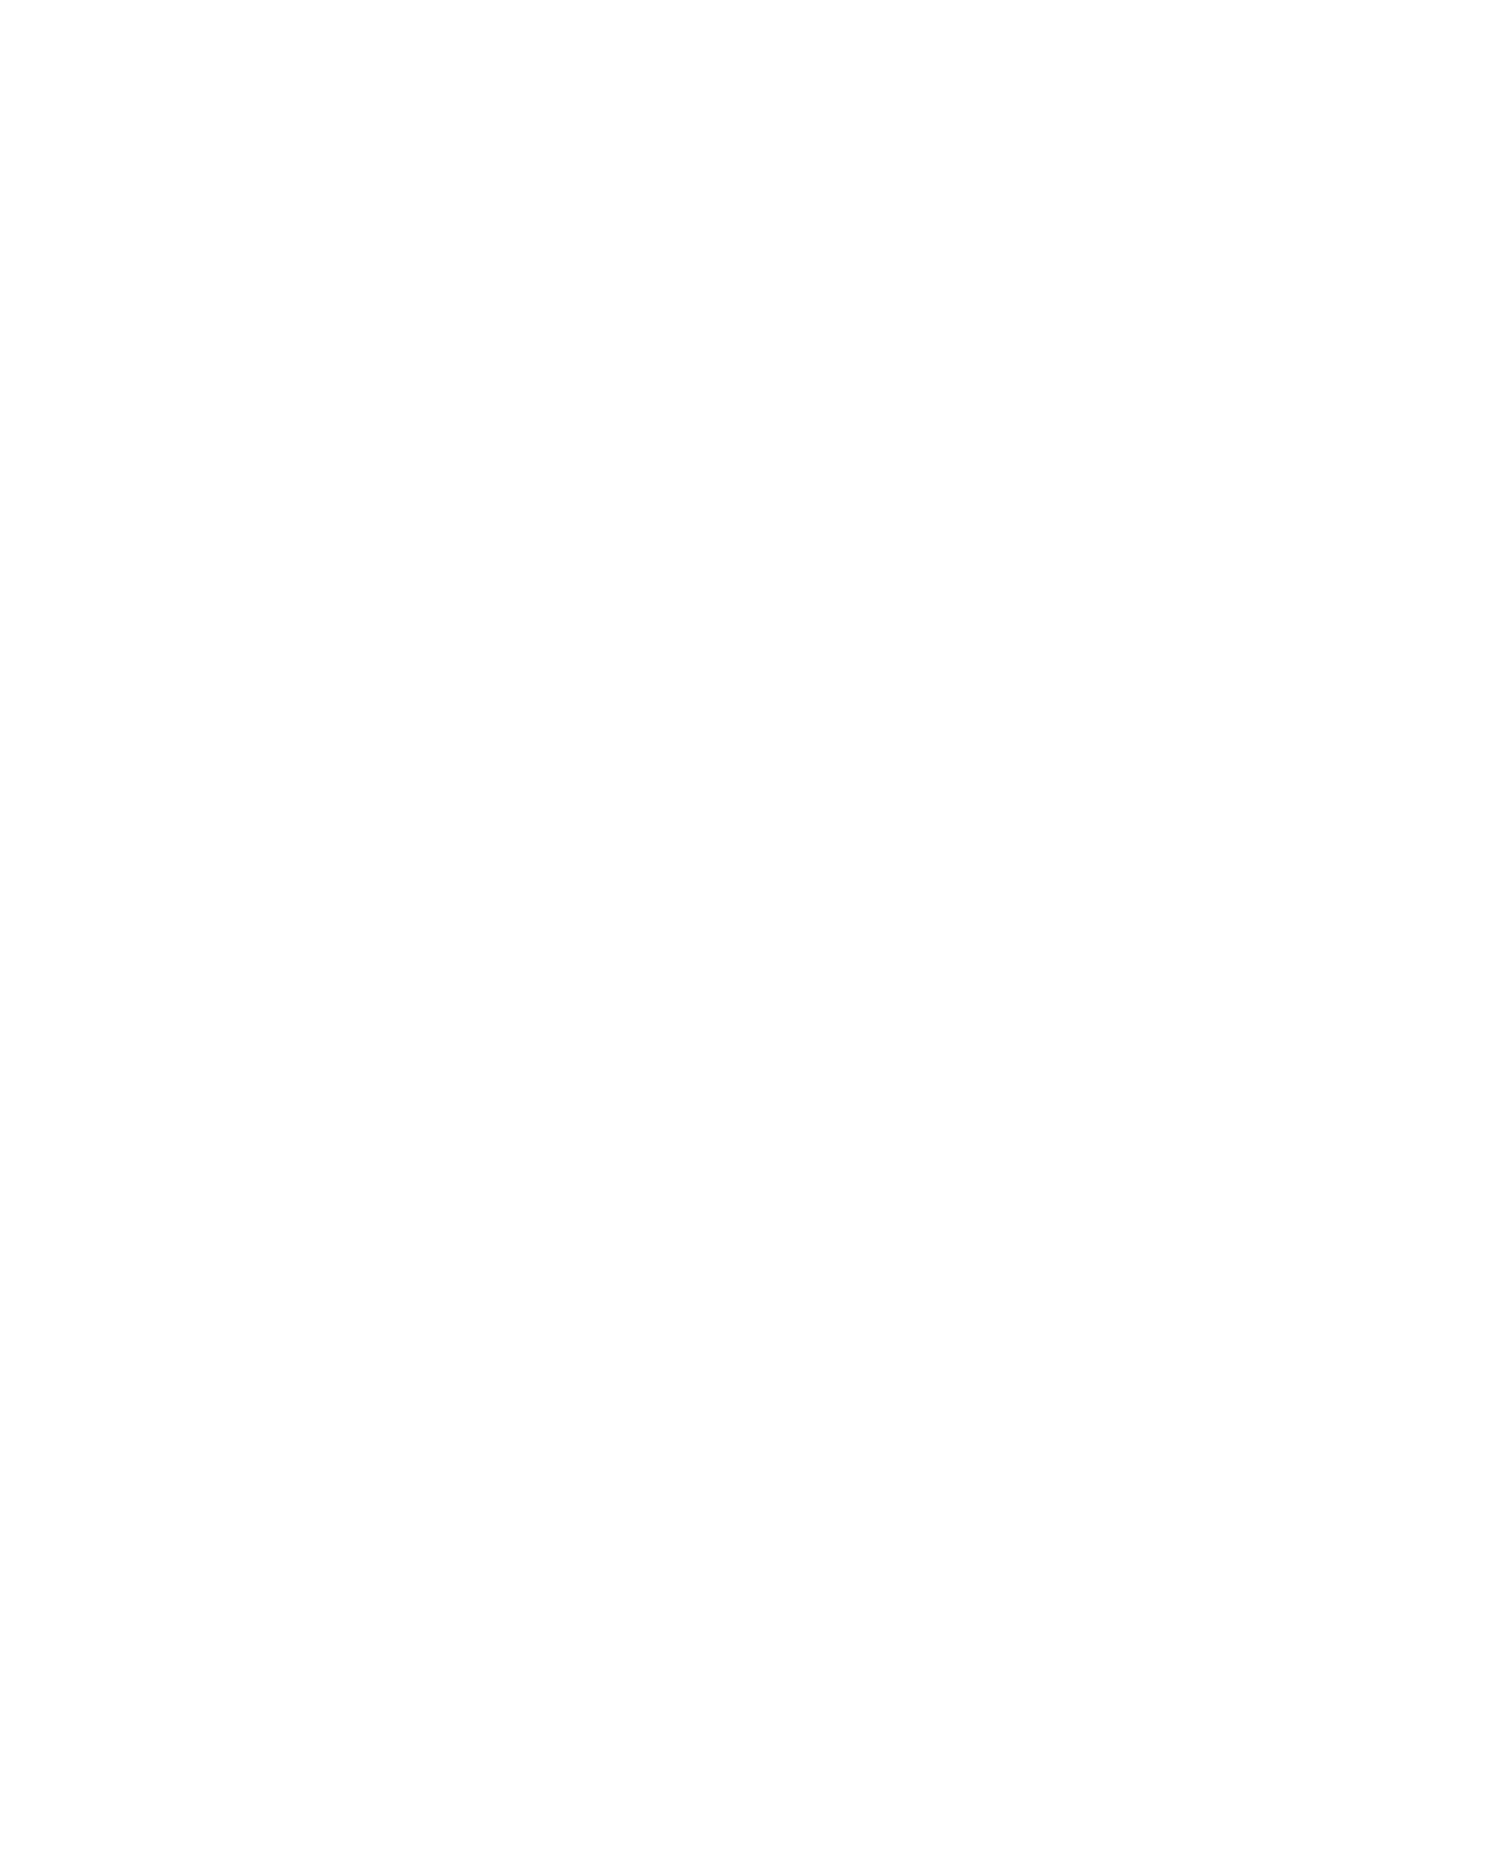 Port Orchard Film Festival